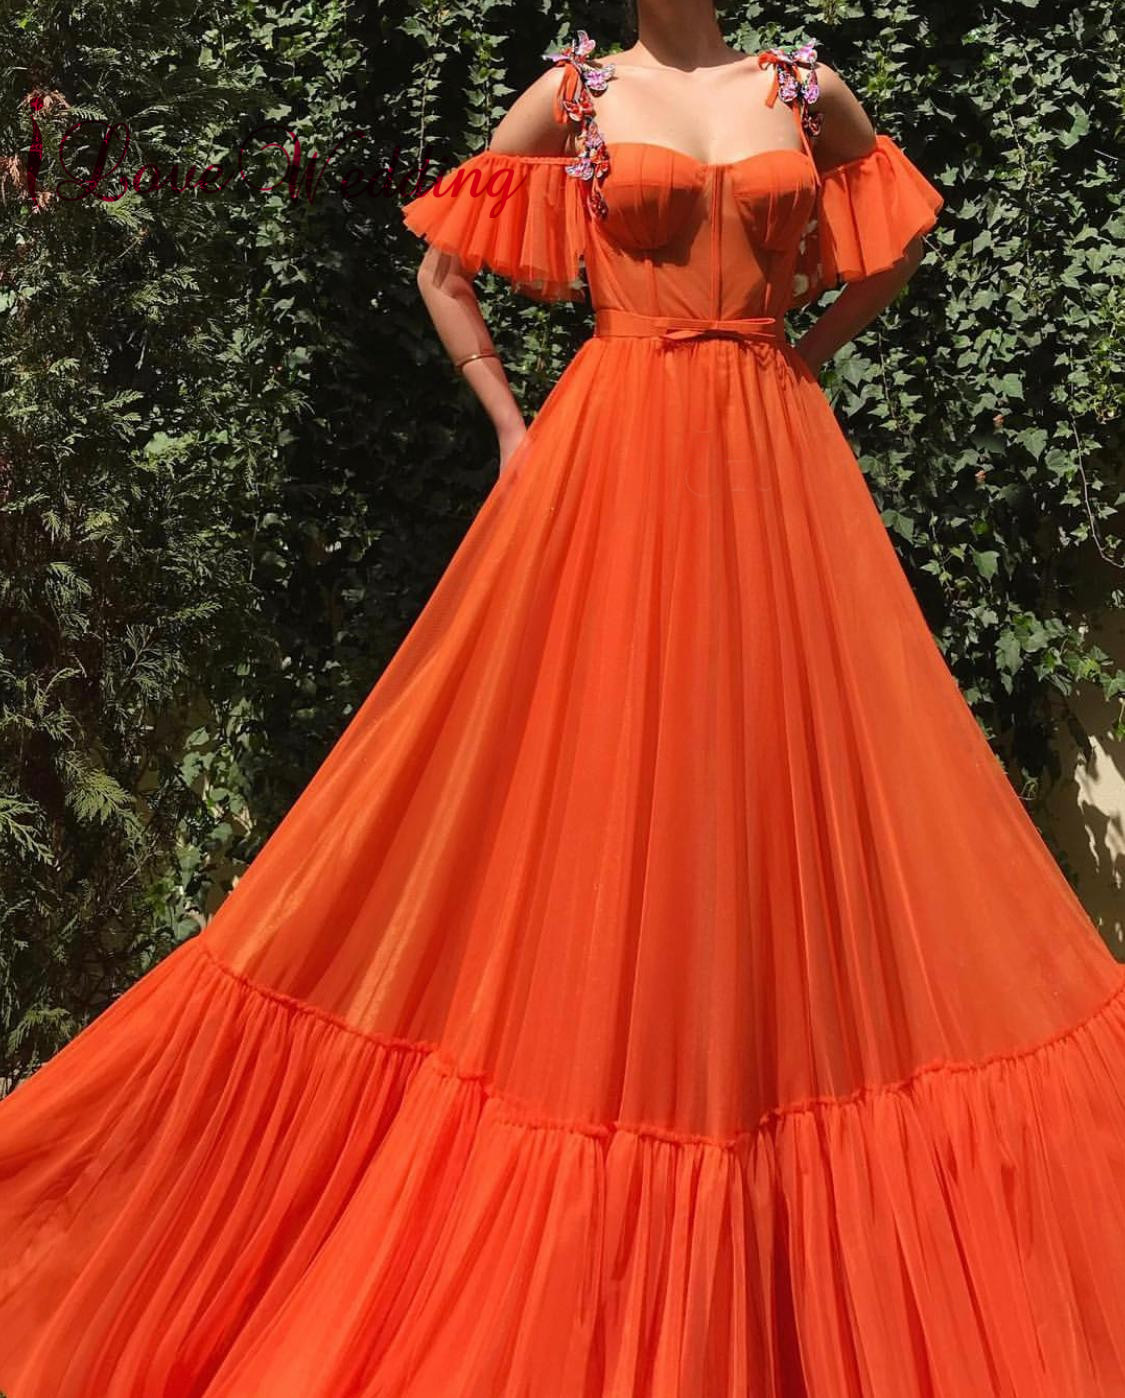 Formal Dress 2019 Strapless Orange Tulle Party Gown Custom Made A Line Off The Shoulder Evening Dresses Long For Party Dress